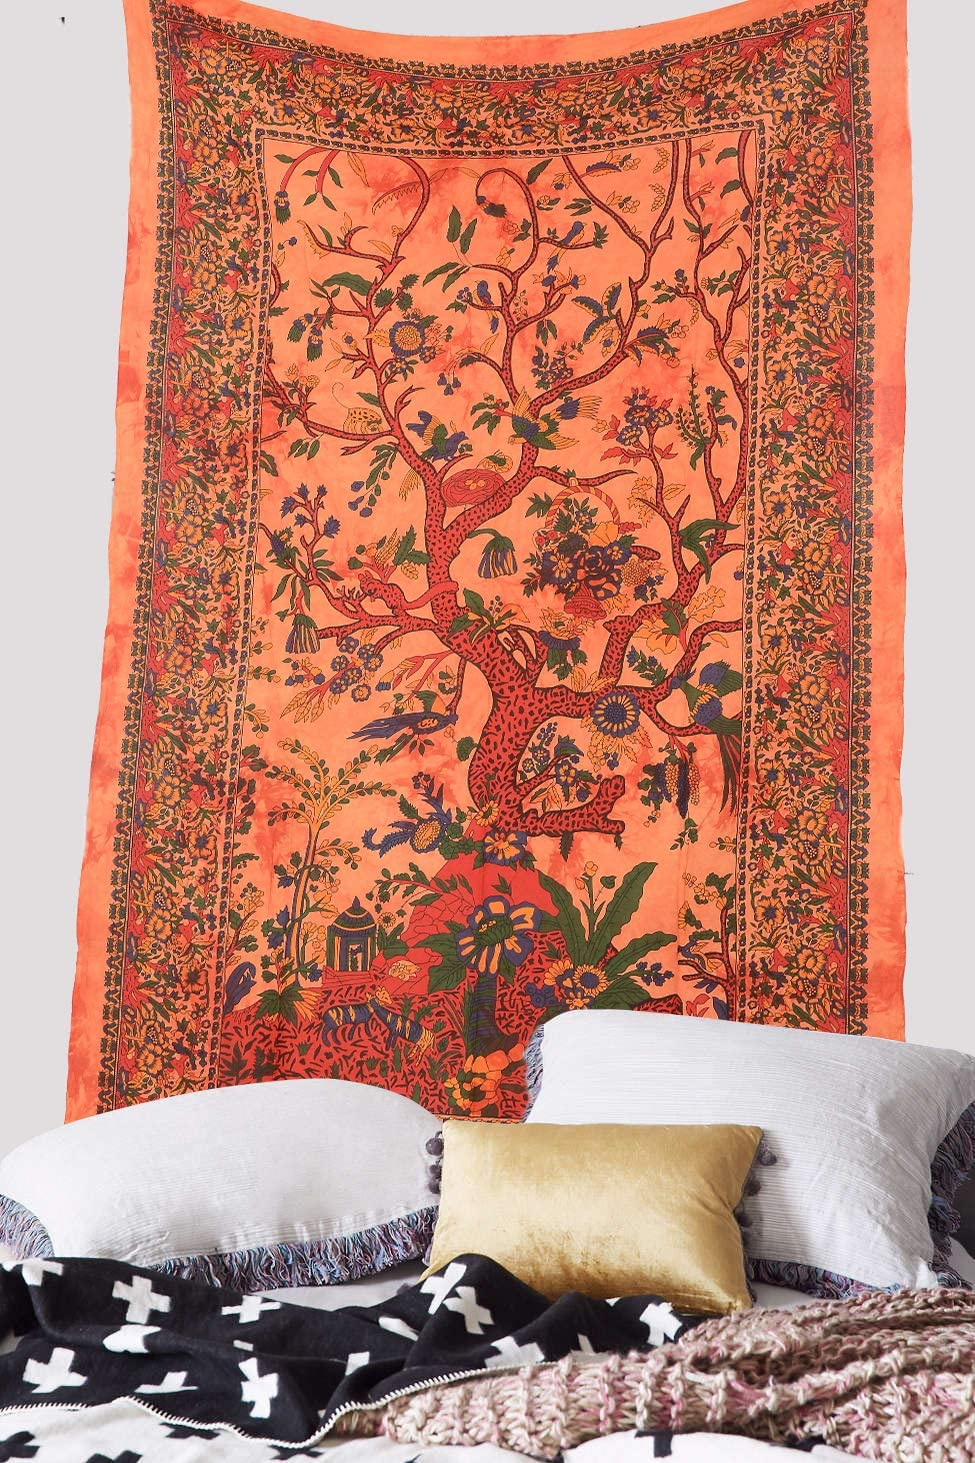 Ambika Designs 100/% Cotton Handmade Hippi Bohemian Indian Green Star Wall Hanging Decorative Indian Art Home Decor Bedspread Twin Size Tapestry